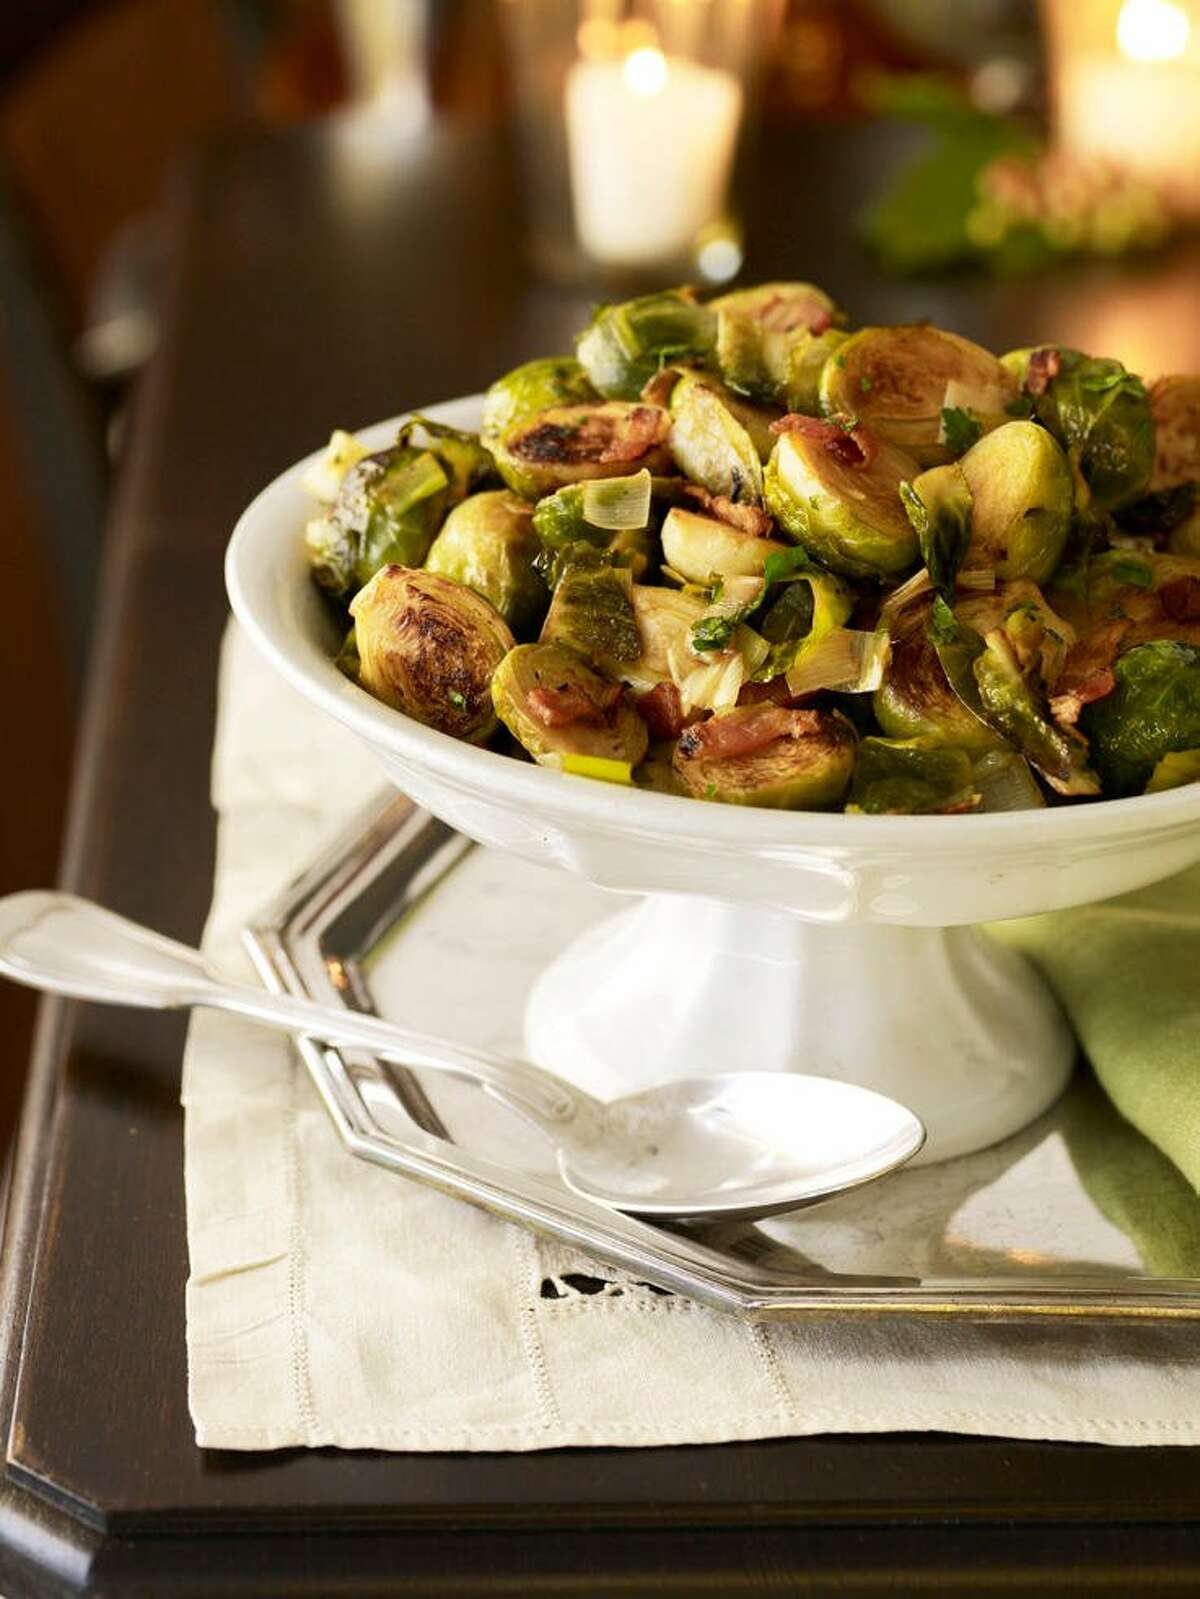 Good Housekeeping recipe for Brussels Sprouts with Leeks and Bacon.